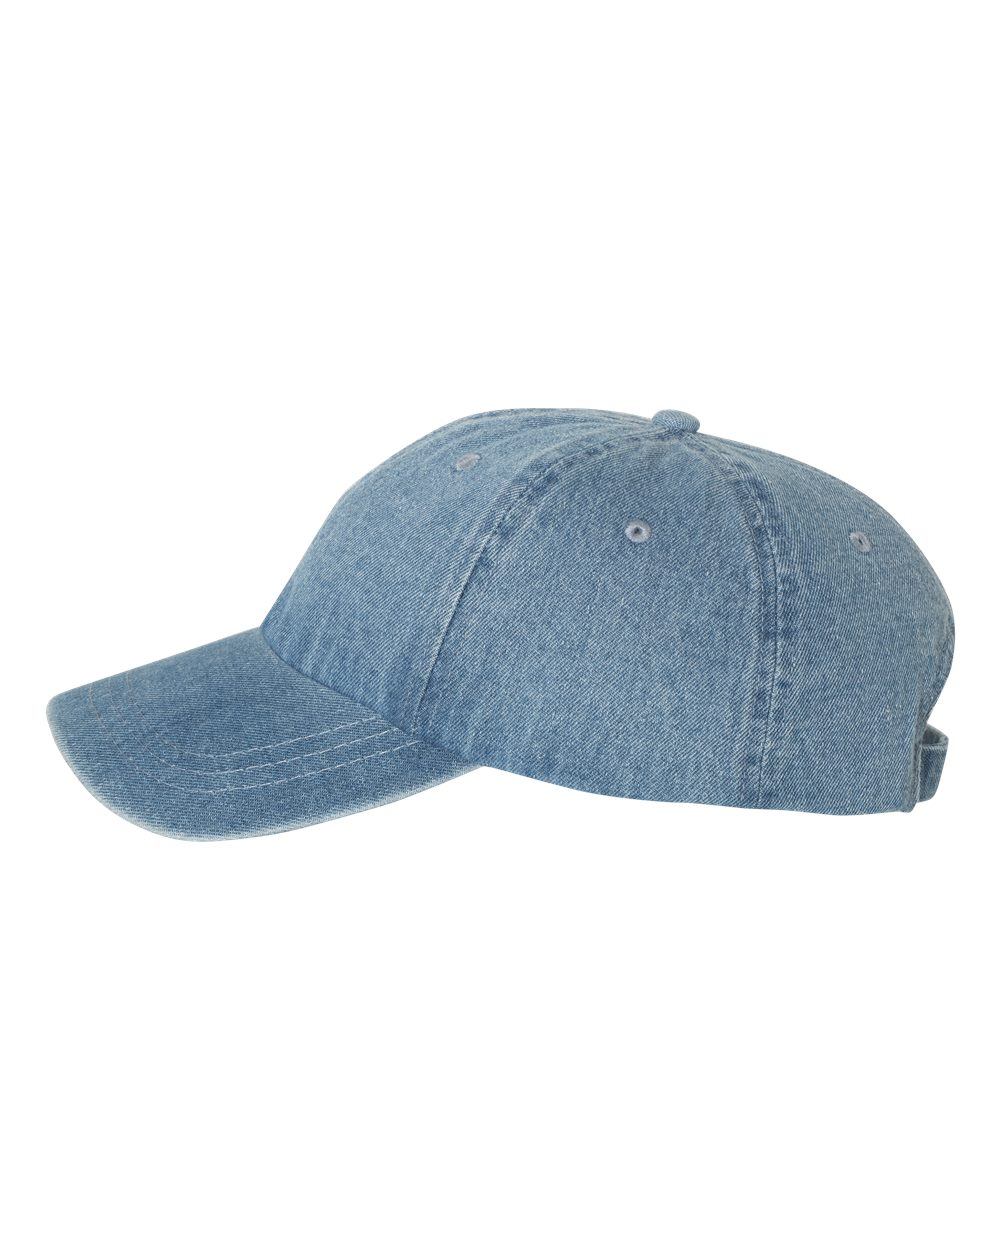 Mega Cap 7610 - Washed Denim Cap